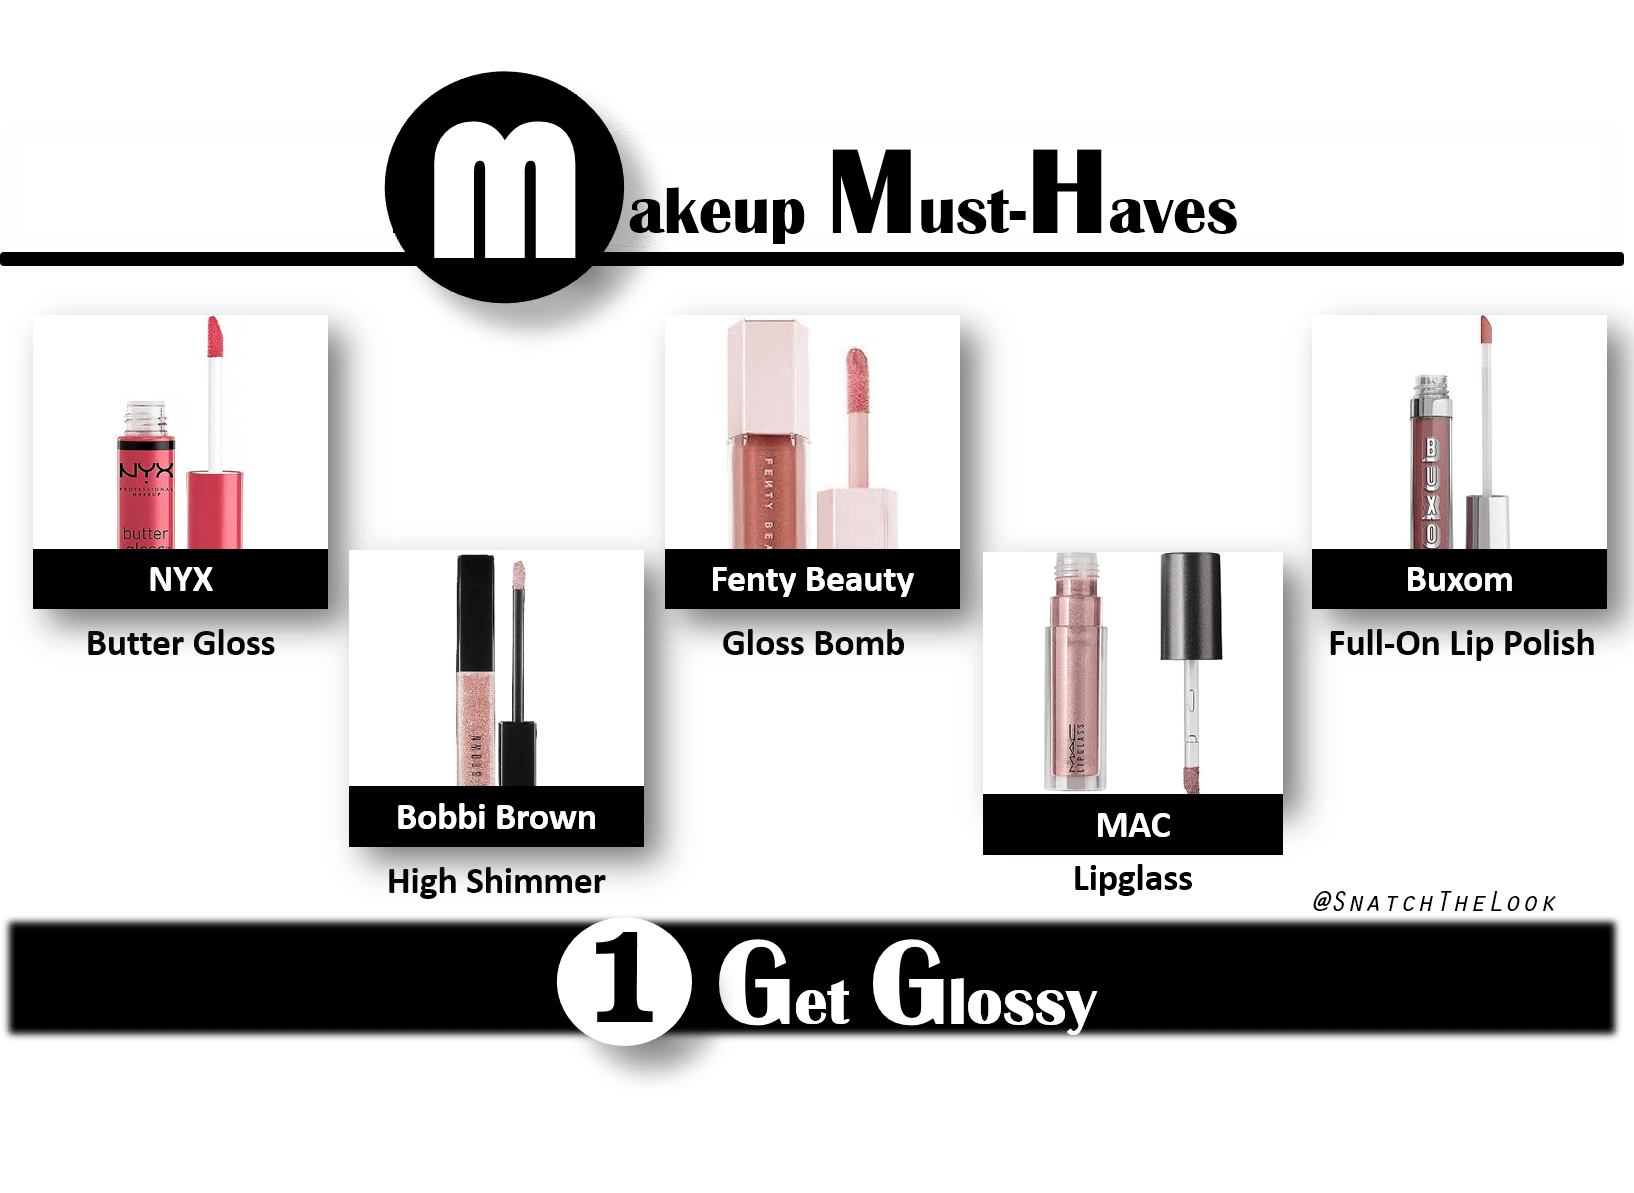 Makeup Must-Haves - Step 1: Get Glossy